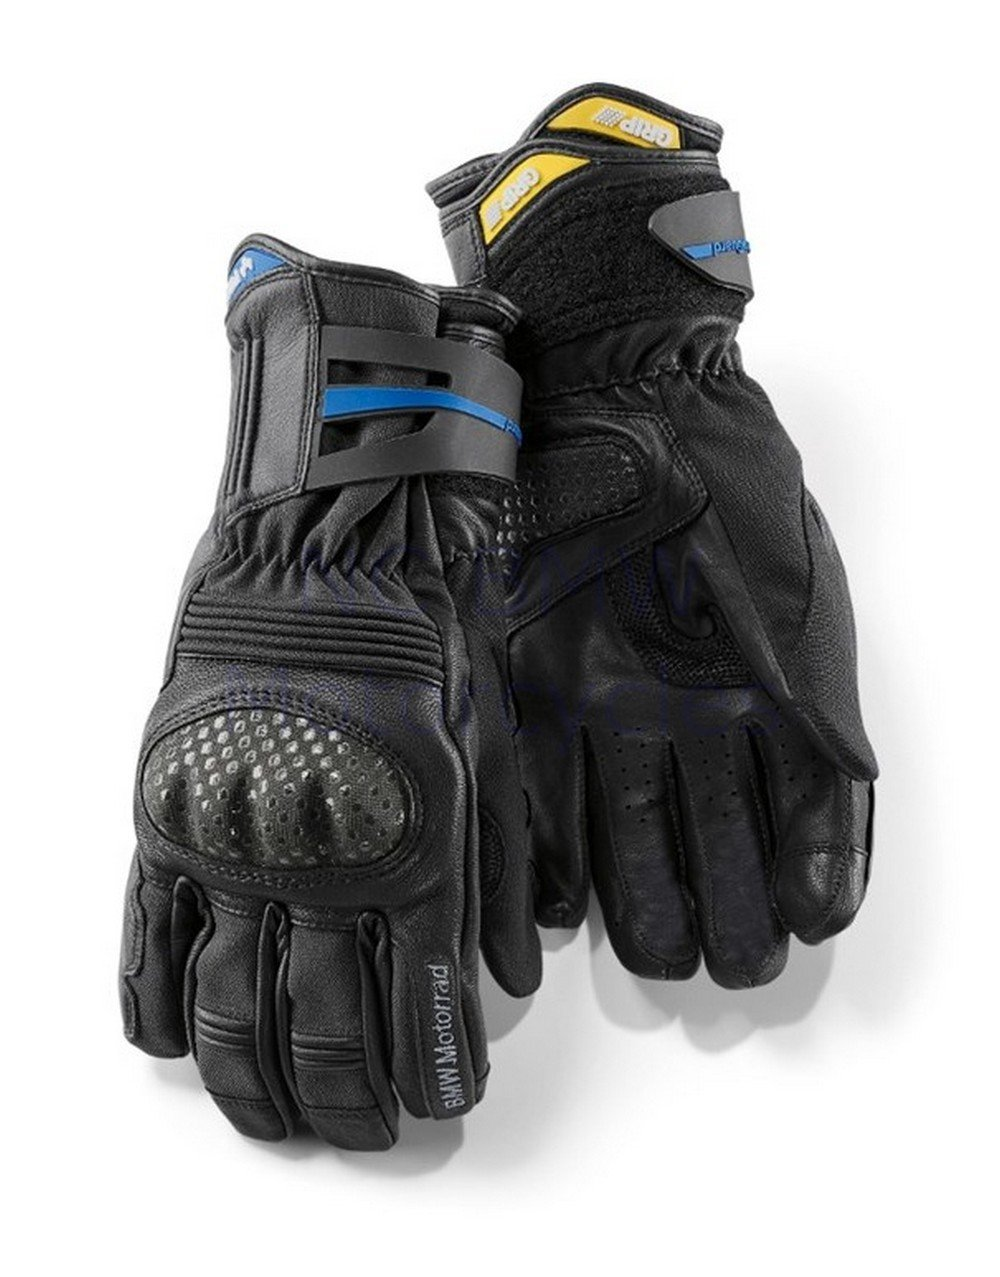 BMW Genuine Motorcycle EnduroGuard 2-in-1 Unisex Glove 6-6.5